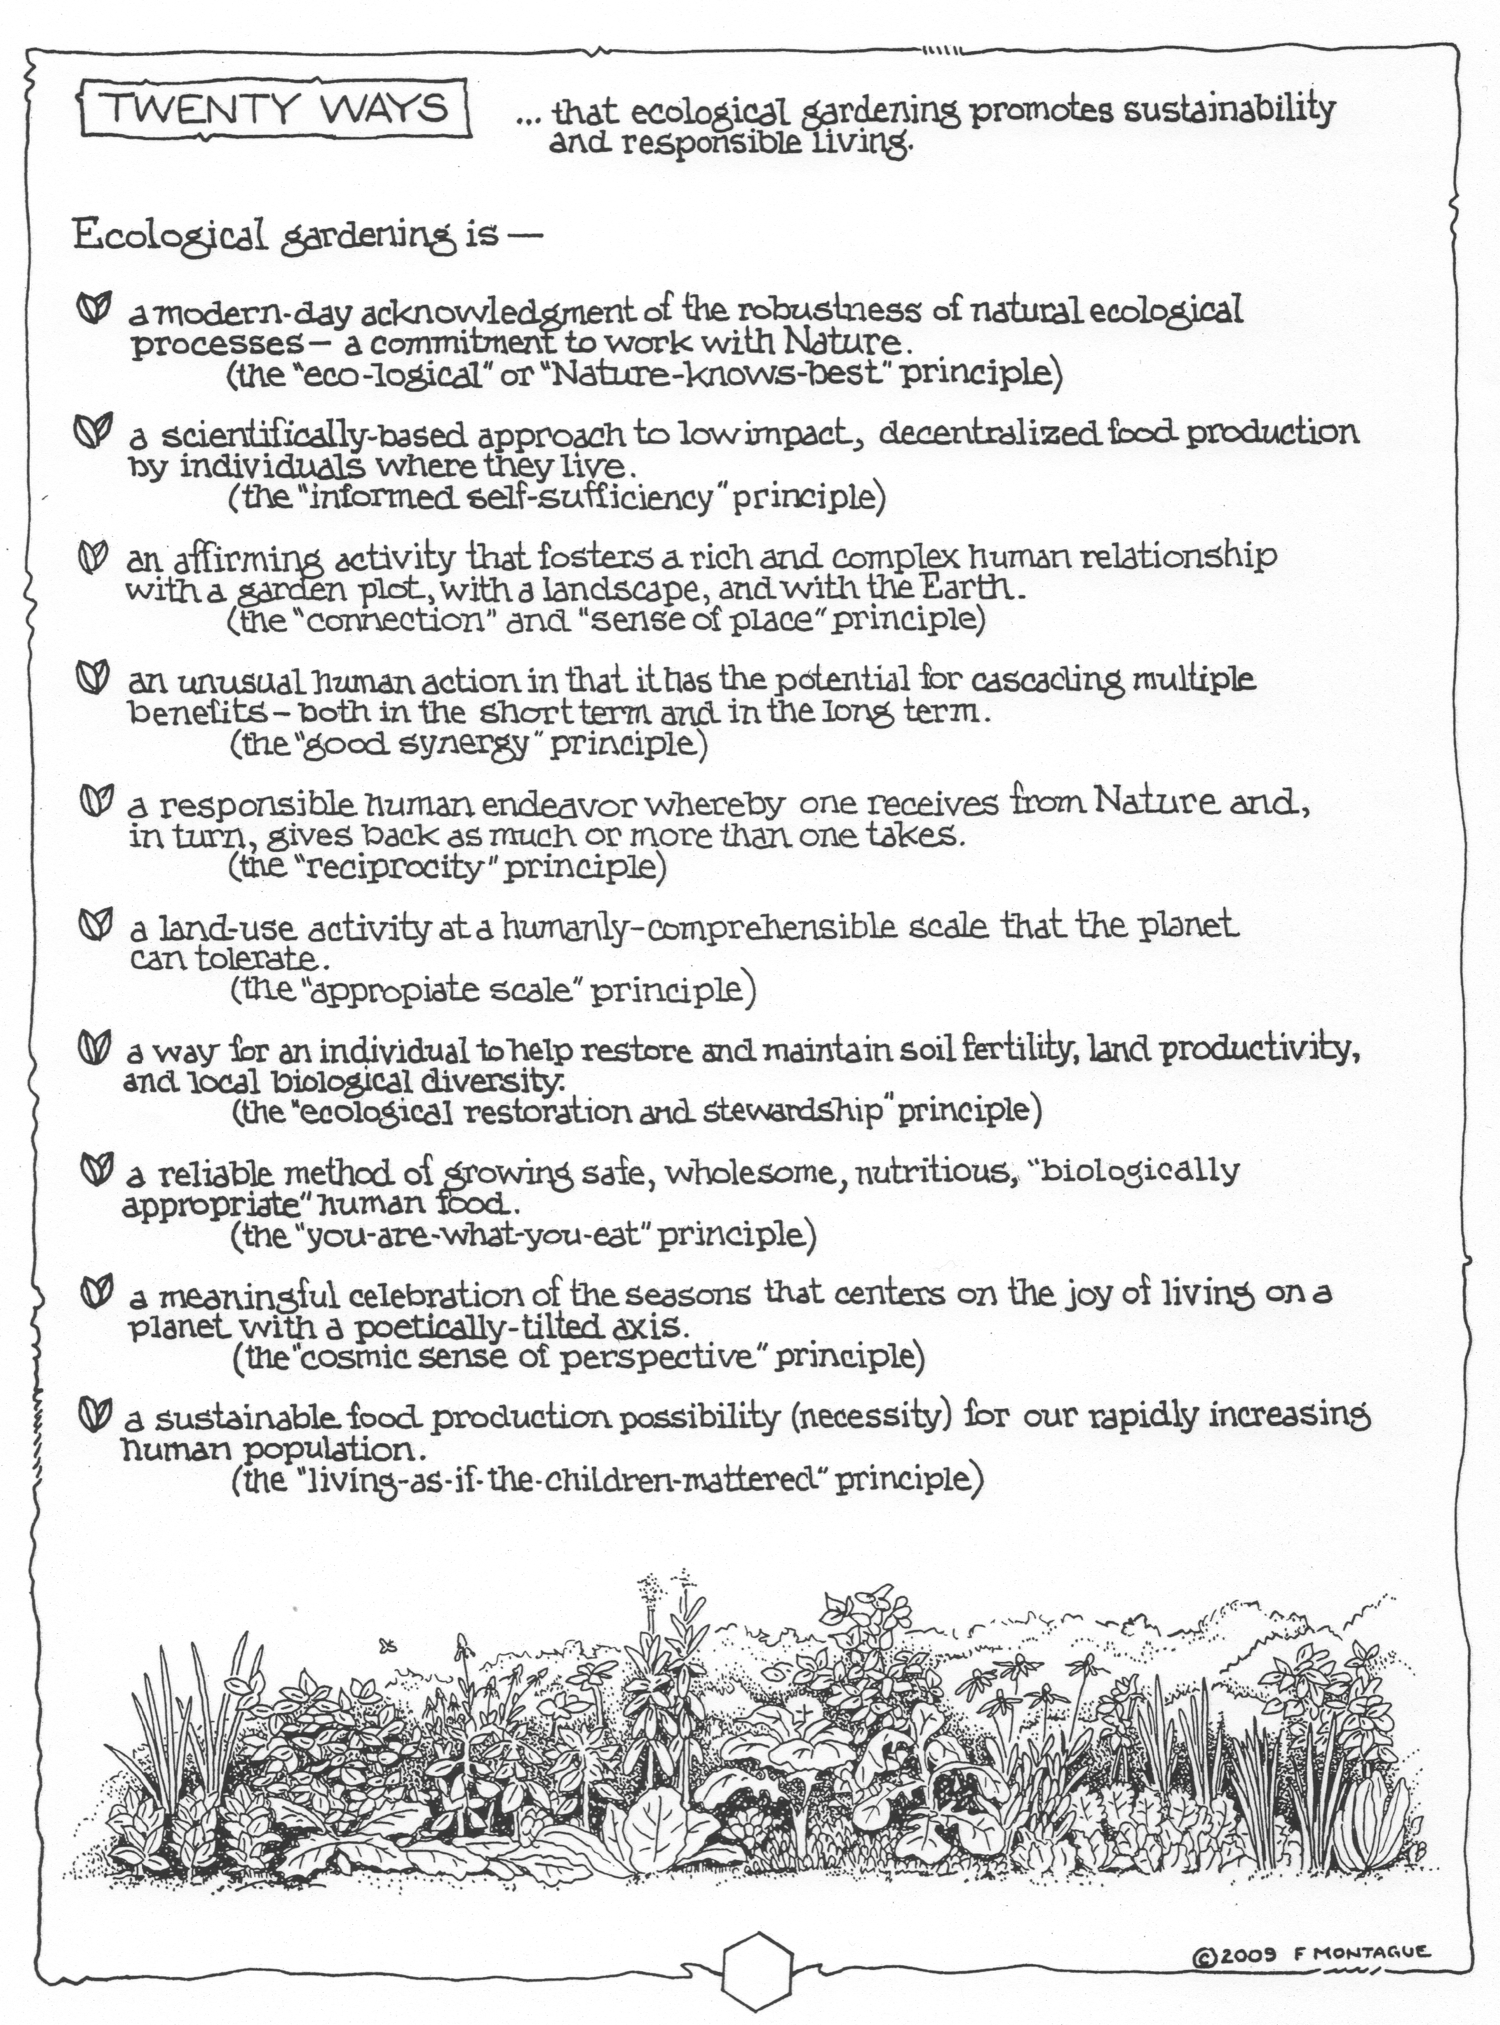 Sample Page from Preface: Twenty ways that ecological gardening promotes sustainability and responsible living. Part one of two.